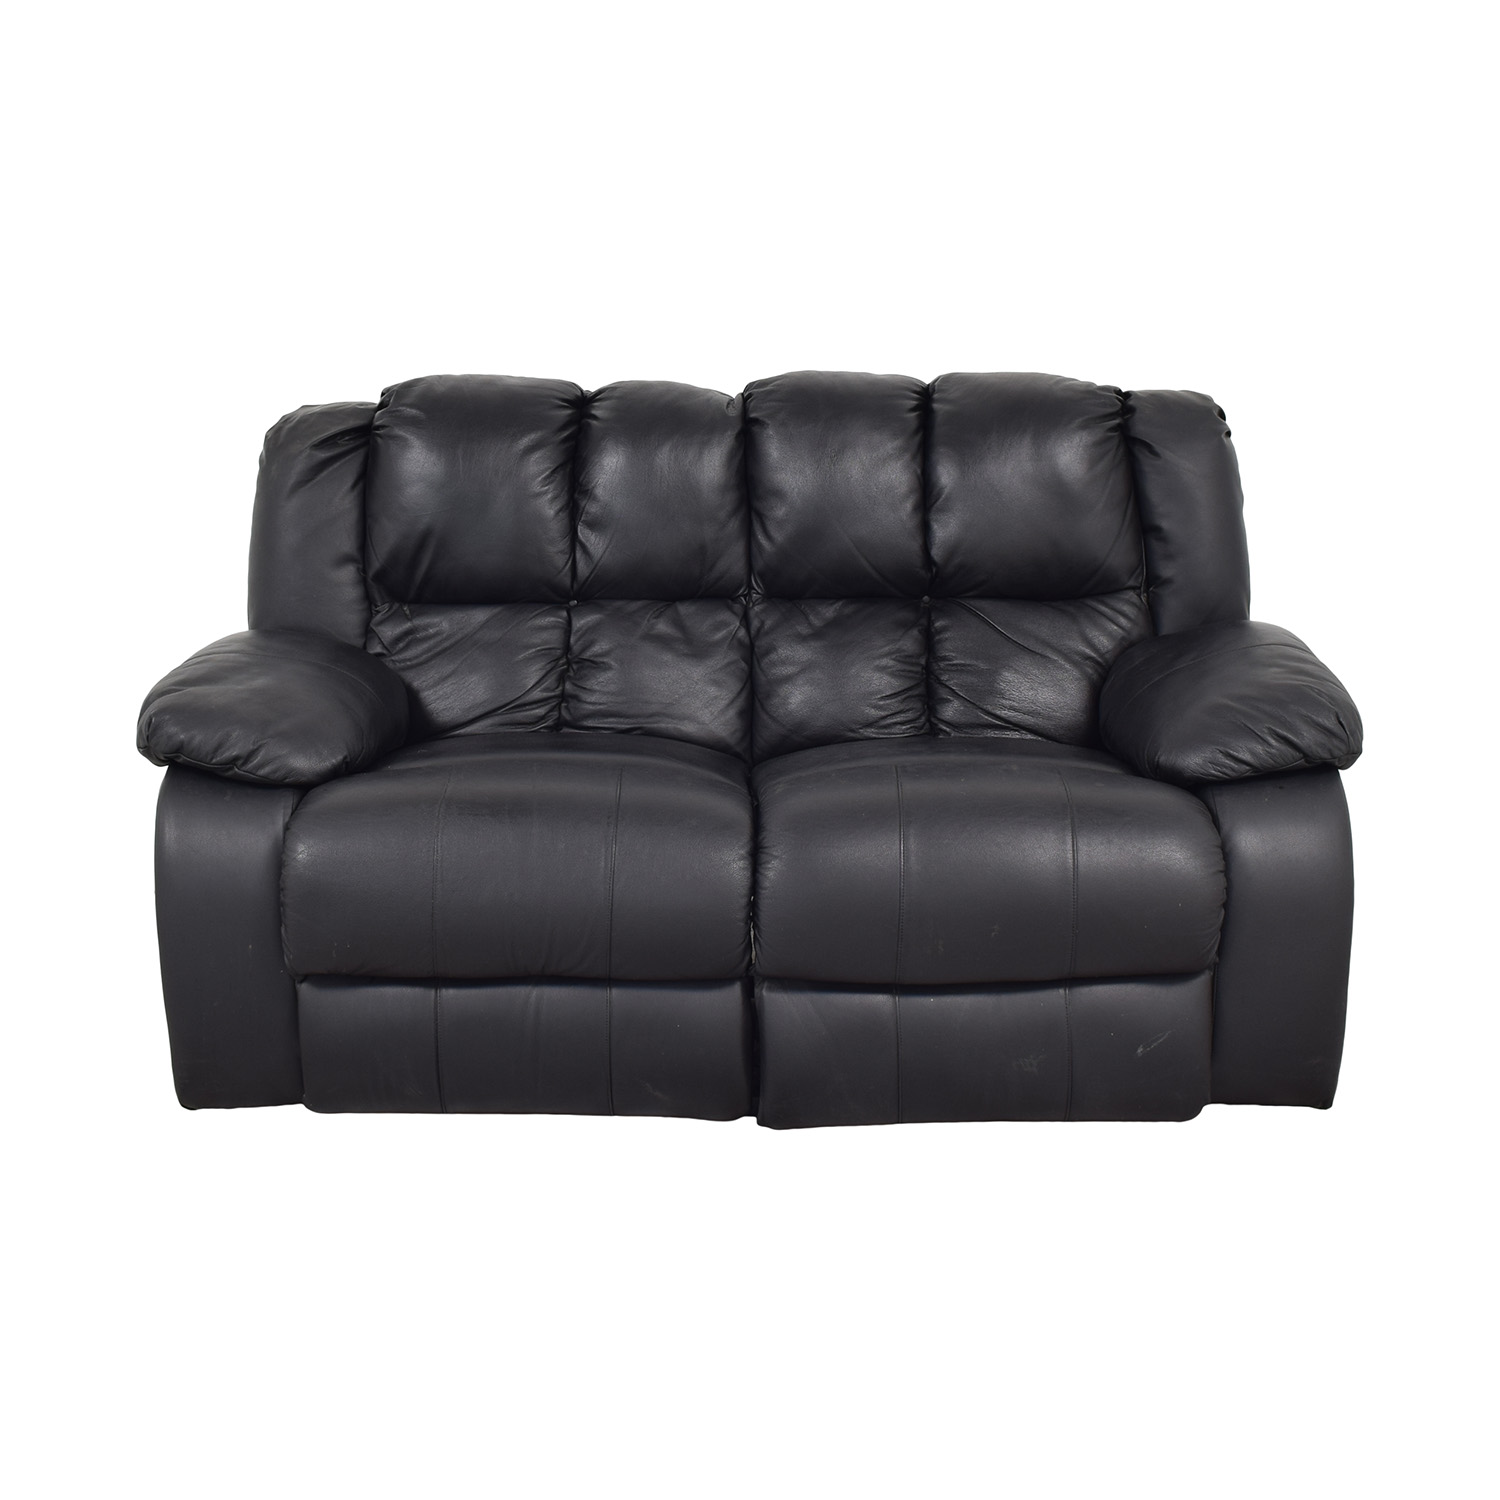 Berkline Reclining Love Seat sale